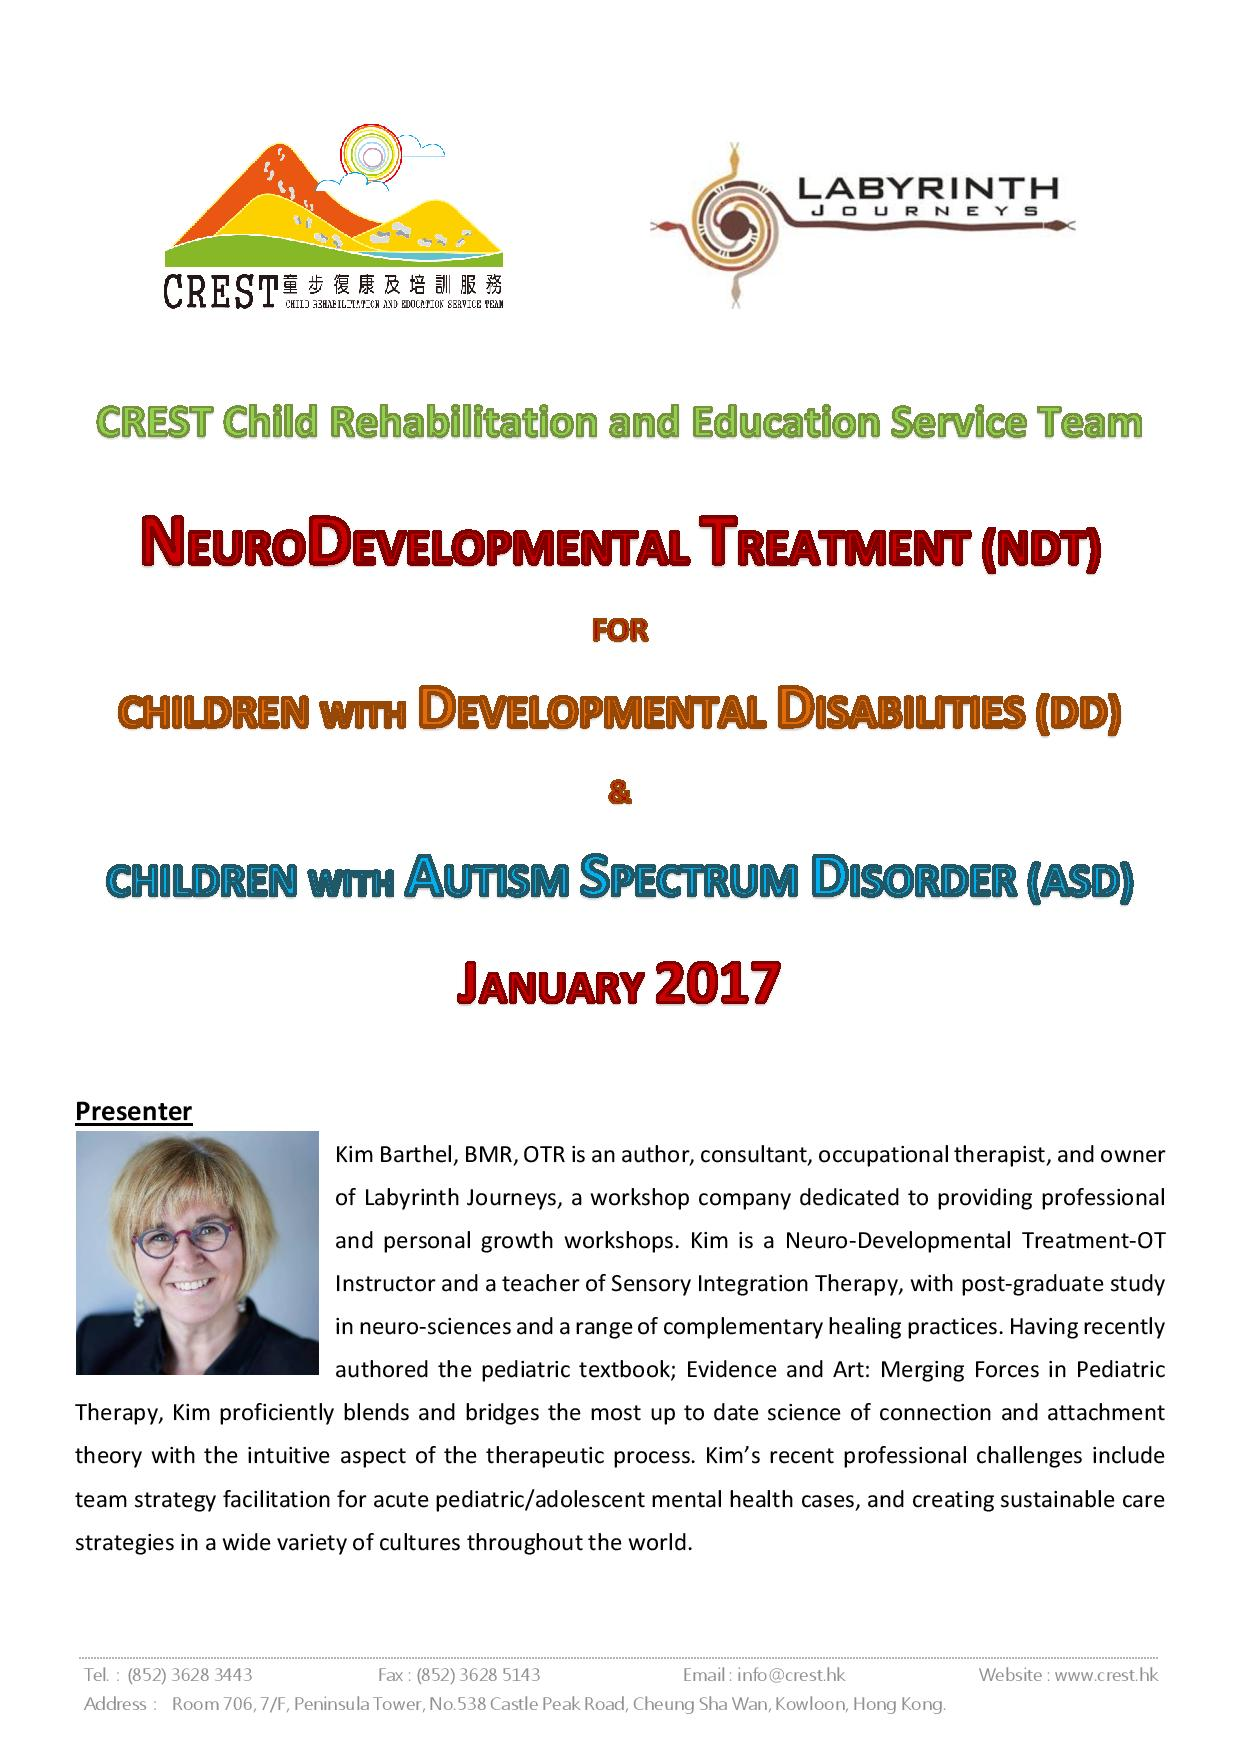 NDT for Developmental Disabilities & NDT for Autism Spectrum